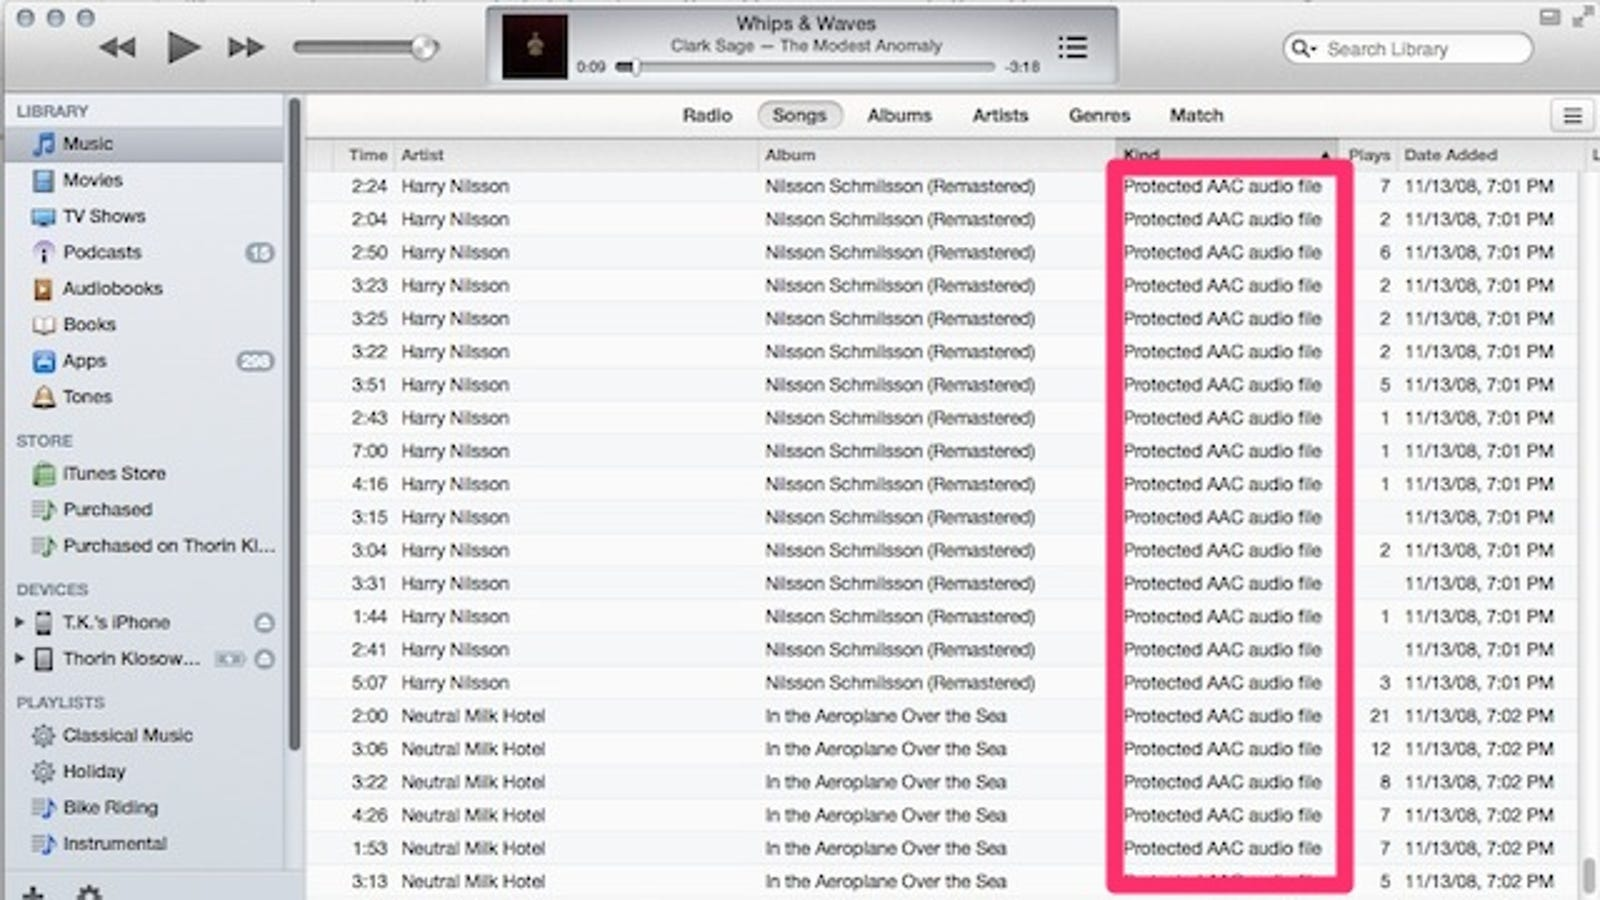 Delete Old DRM Copies of iTunes Music and Download DRM-Free